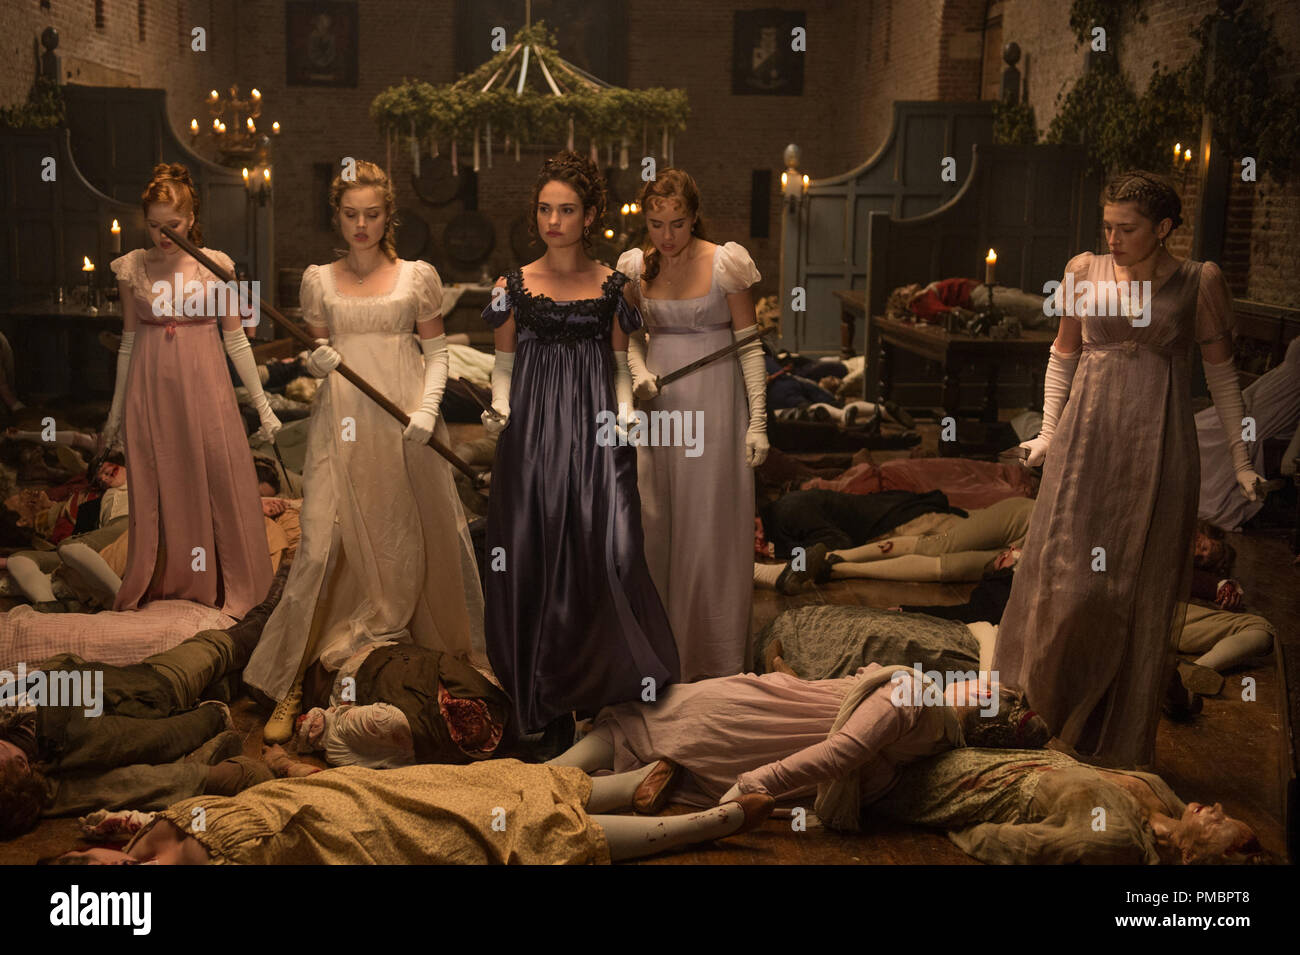 (l to r) Ellie Bamber, Bella Heathcote, Lily James, Suki Waterhouse and Millie Brady in Screen Gems' PRIDE AND PREJUDICE AND ZOMBIES. - Stock Image